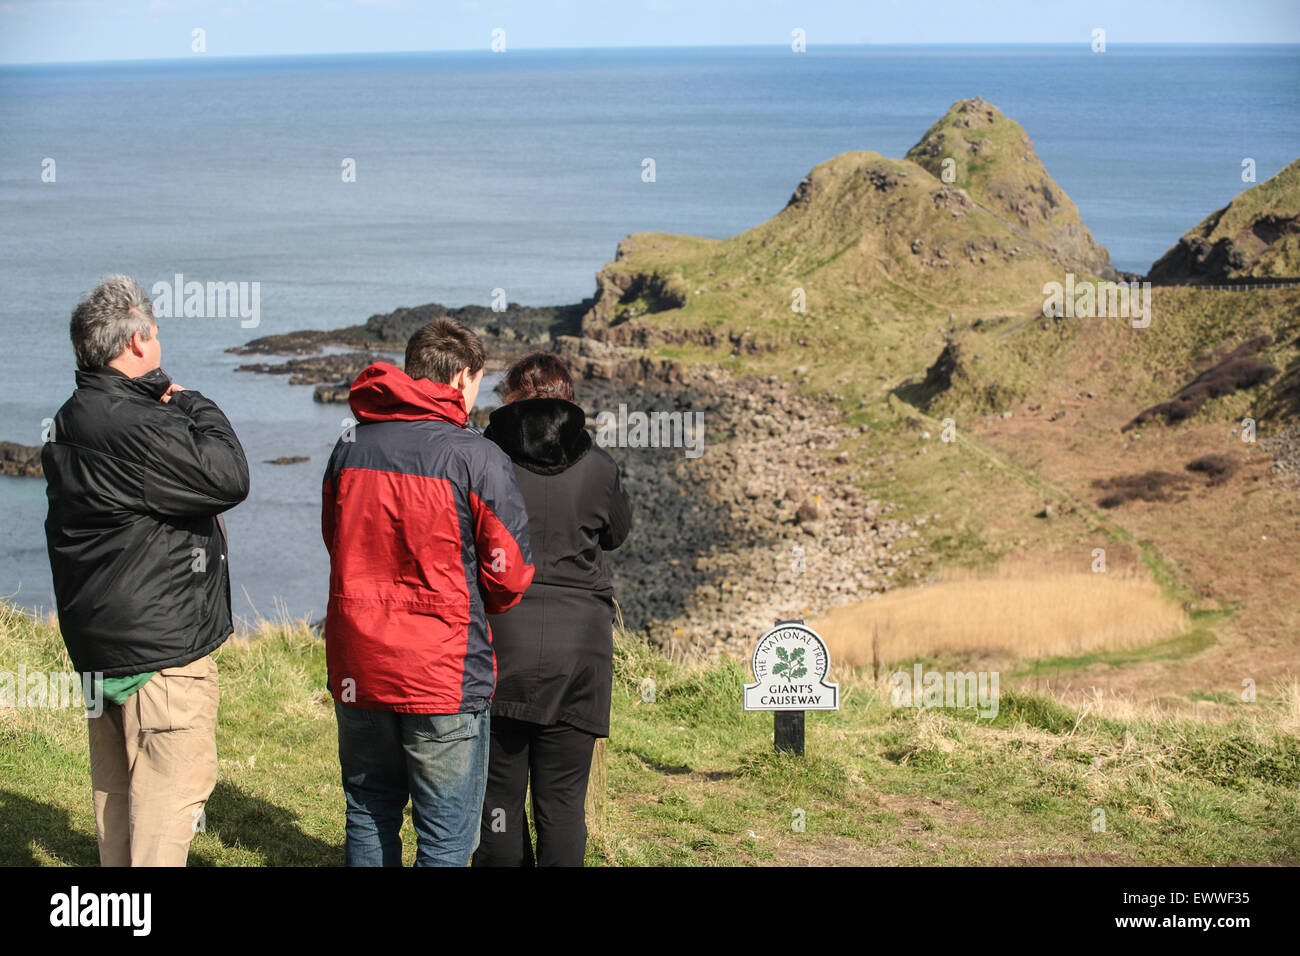 Just above the lunar-like landscape of Giant's Causeway. The Causway is a geological freak, caused by volcanic - Stock Image